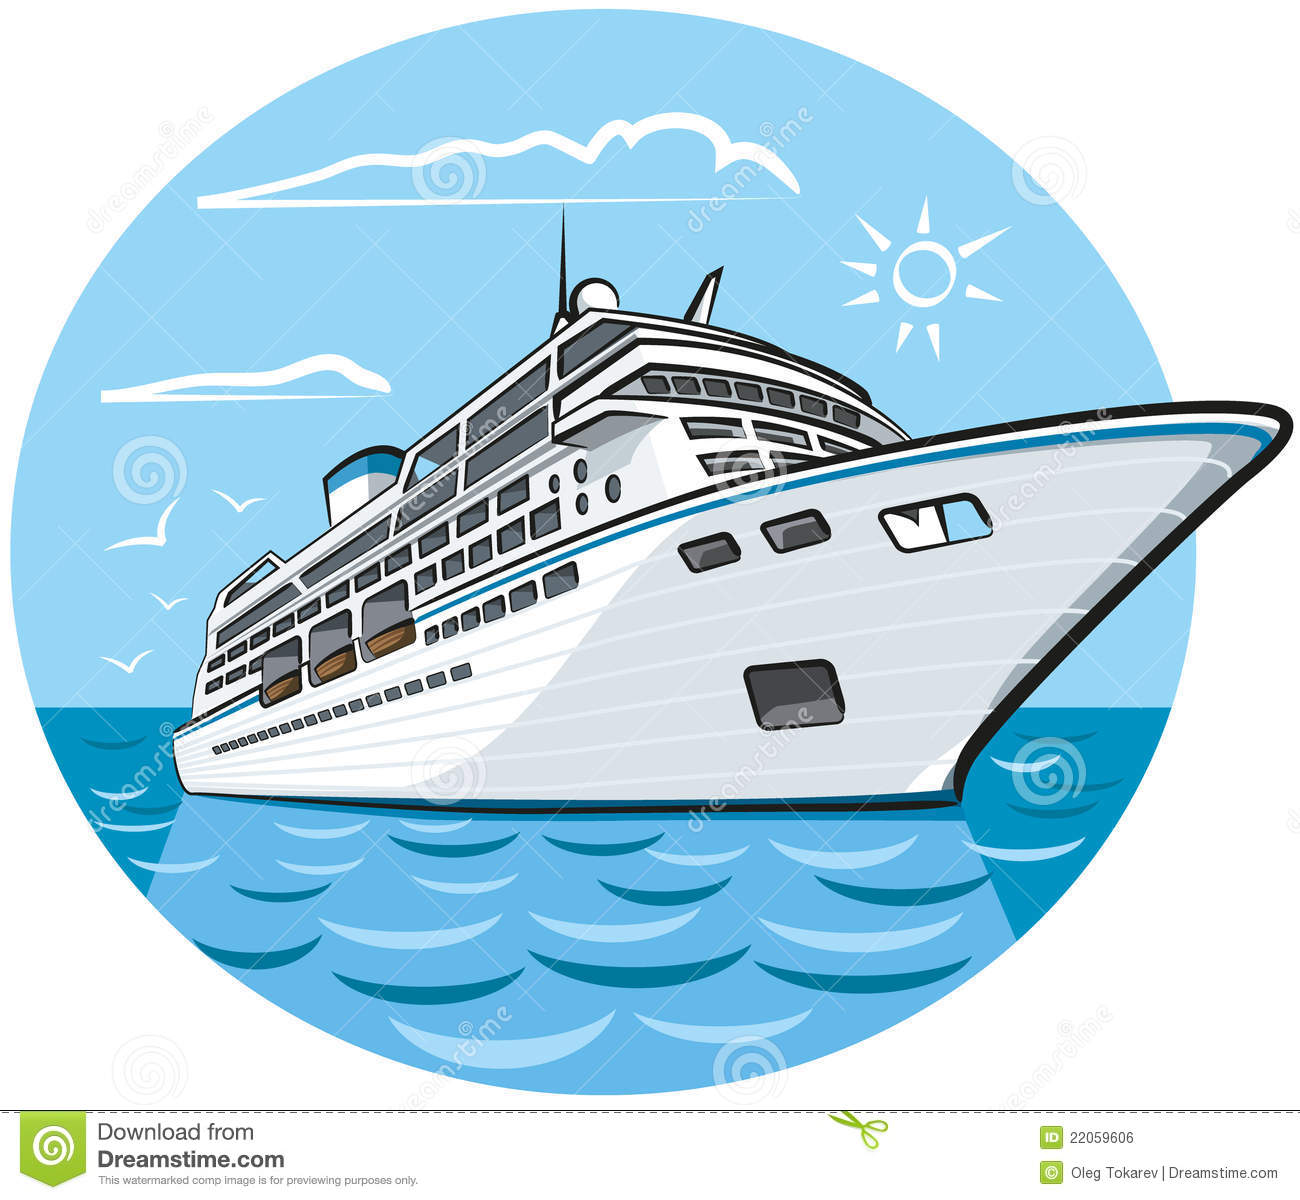 royal caribbean cruise ship clipart clipart suggest